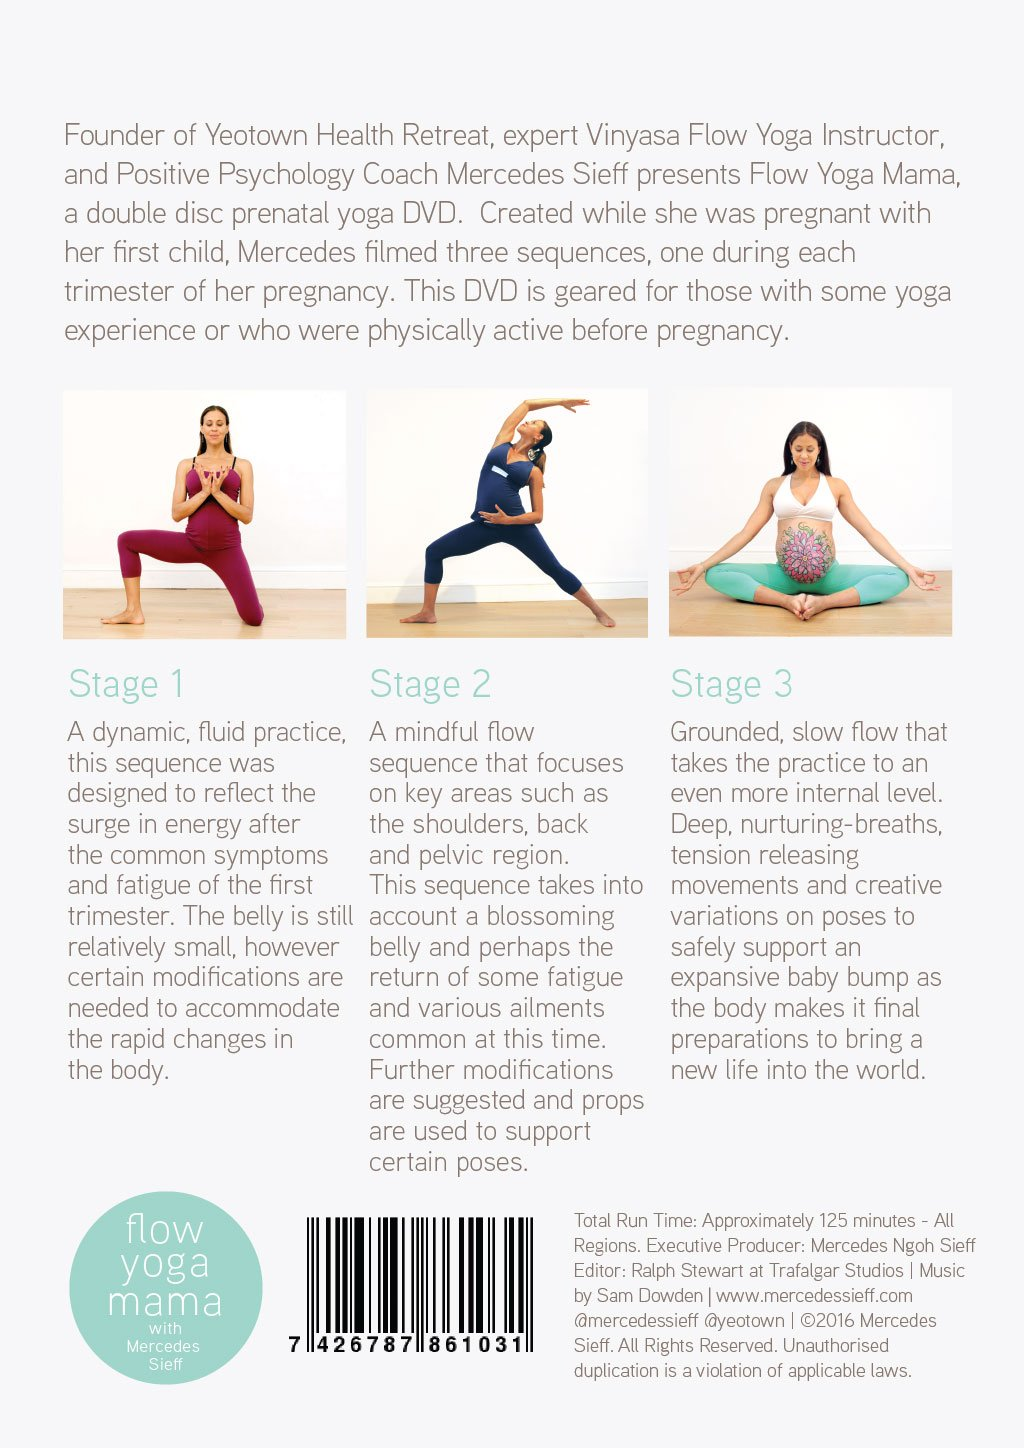 Flow Yoga Mama A Pregnancy Yoga Sequence For Each Trimester With